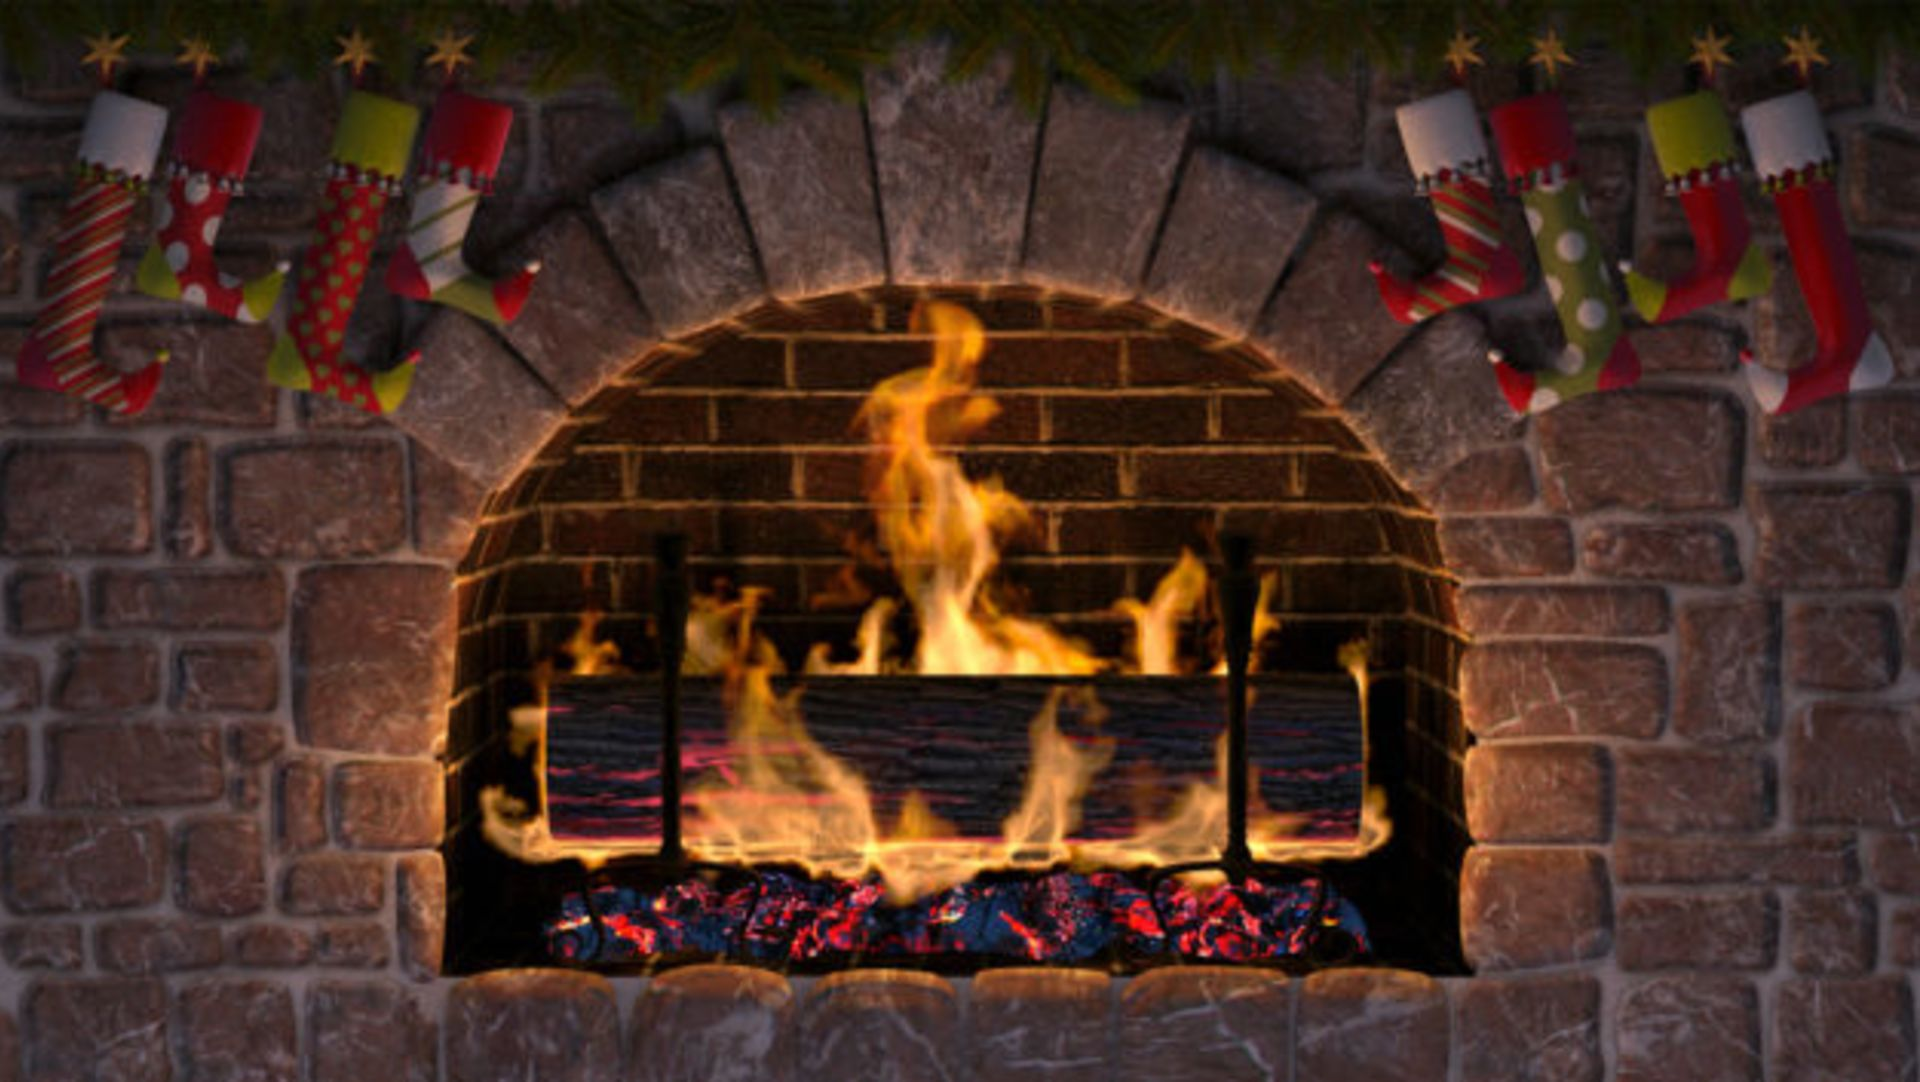 What Is a Yule Log? This Holiday Tradition Has Some Weird Roots